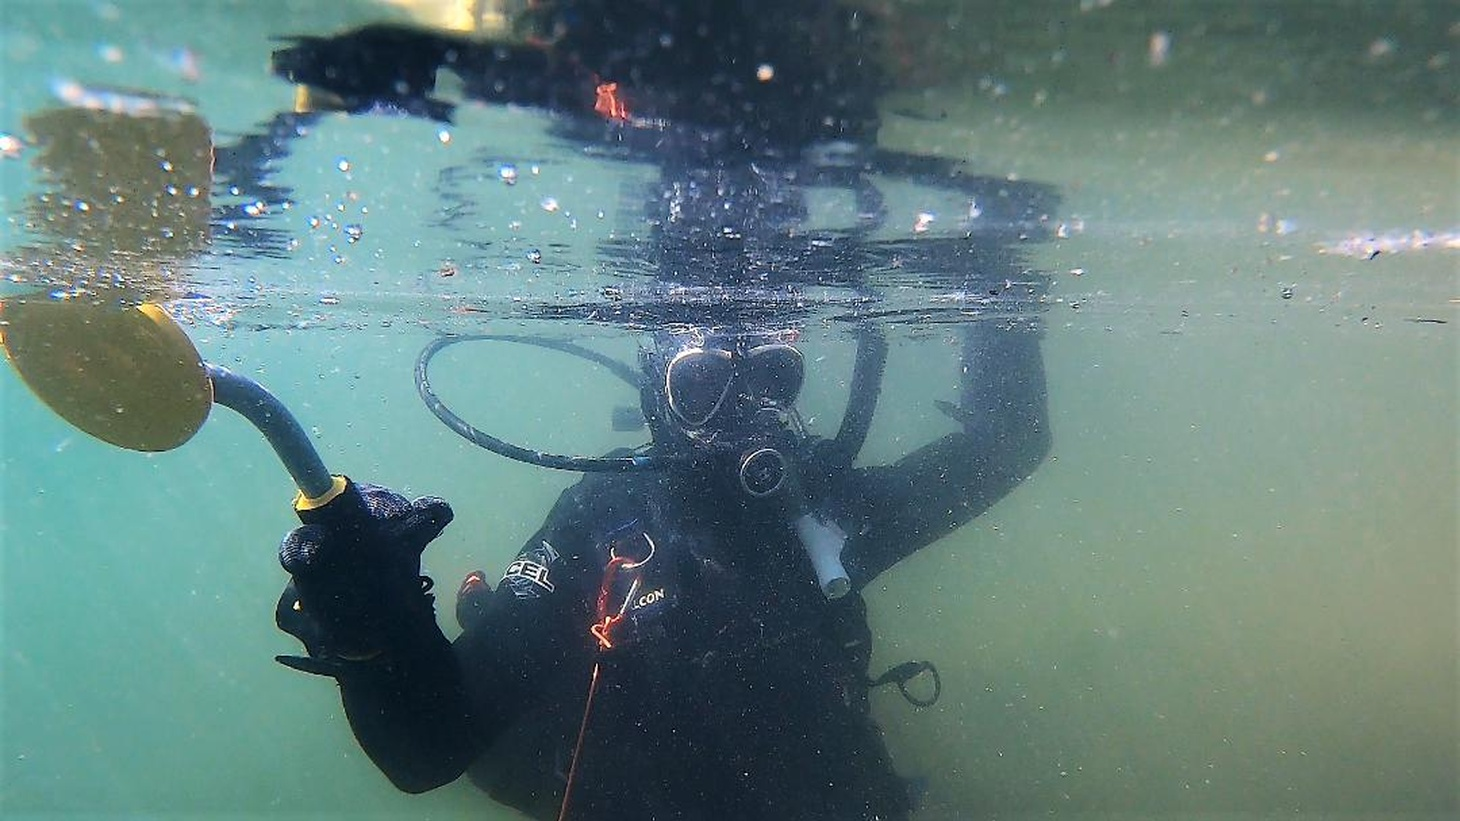 Michael Pelley spends his free time underwater, retrieving people's lost items.